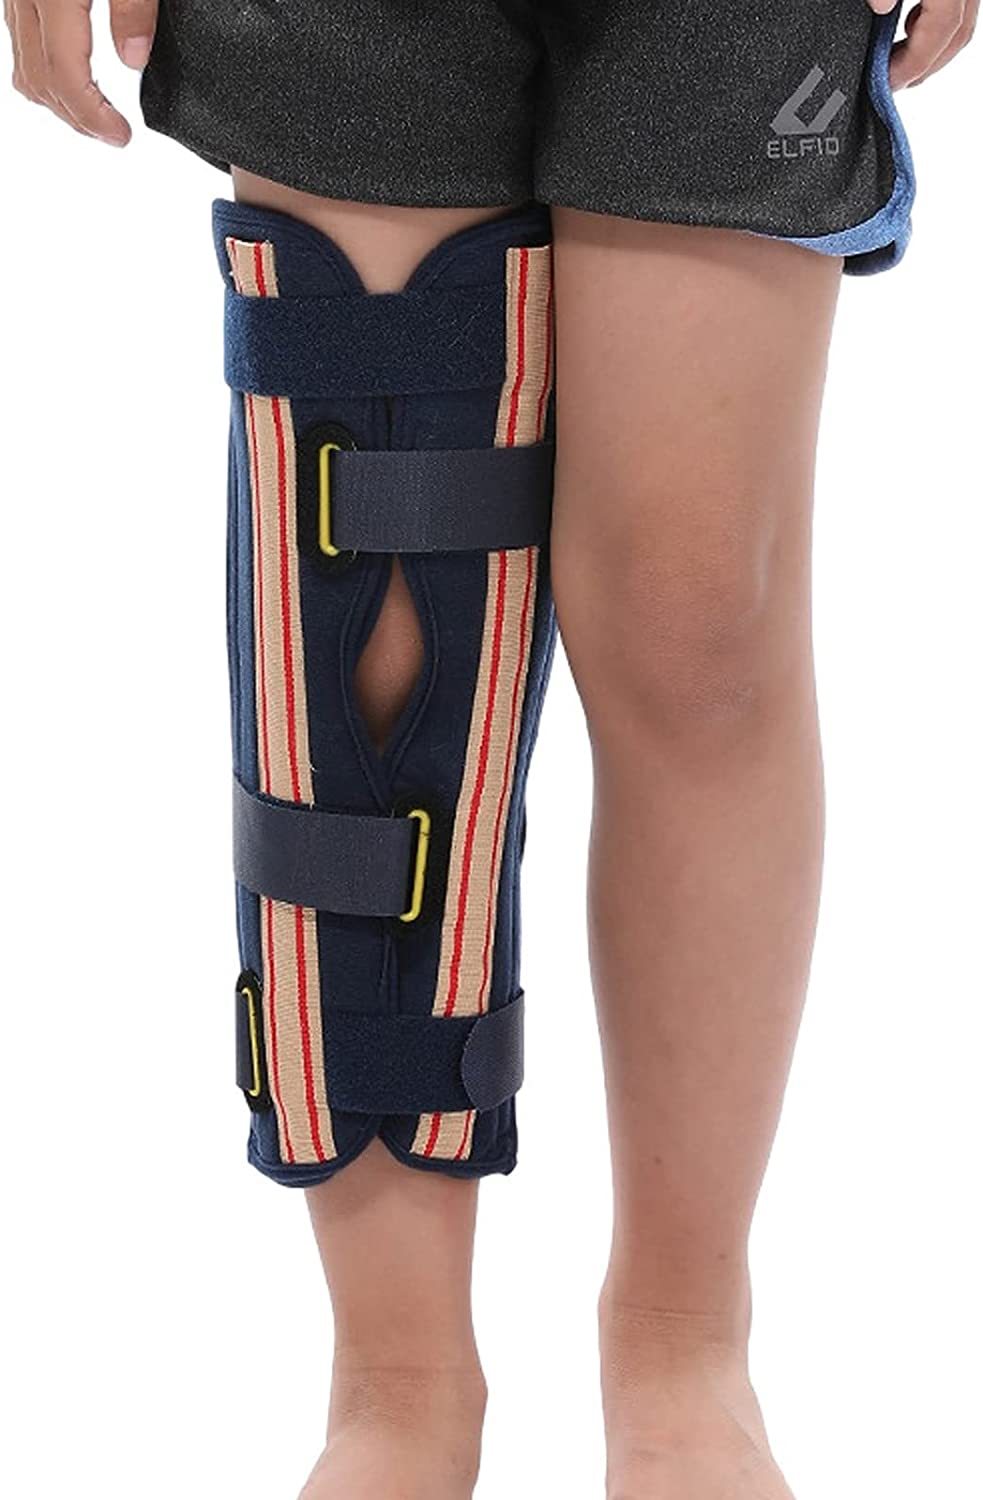 LKKHOSC Children's Knee Pads Adjustable New product! New type Composite Patella National products Open C